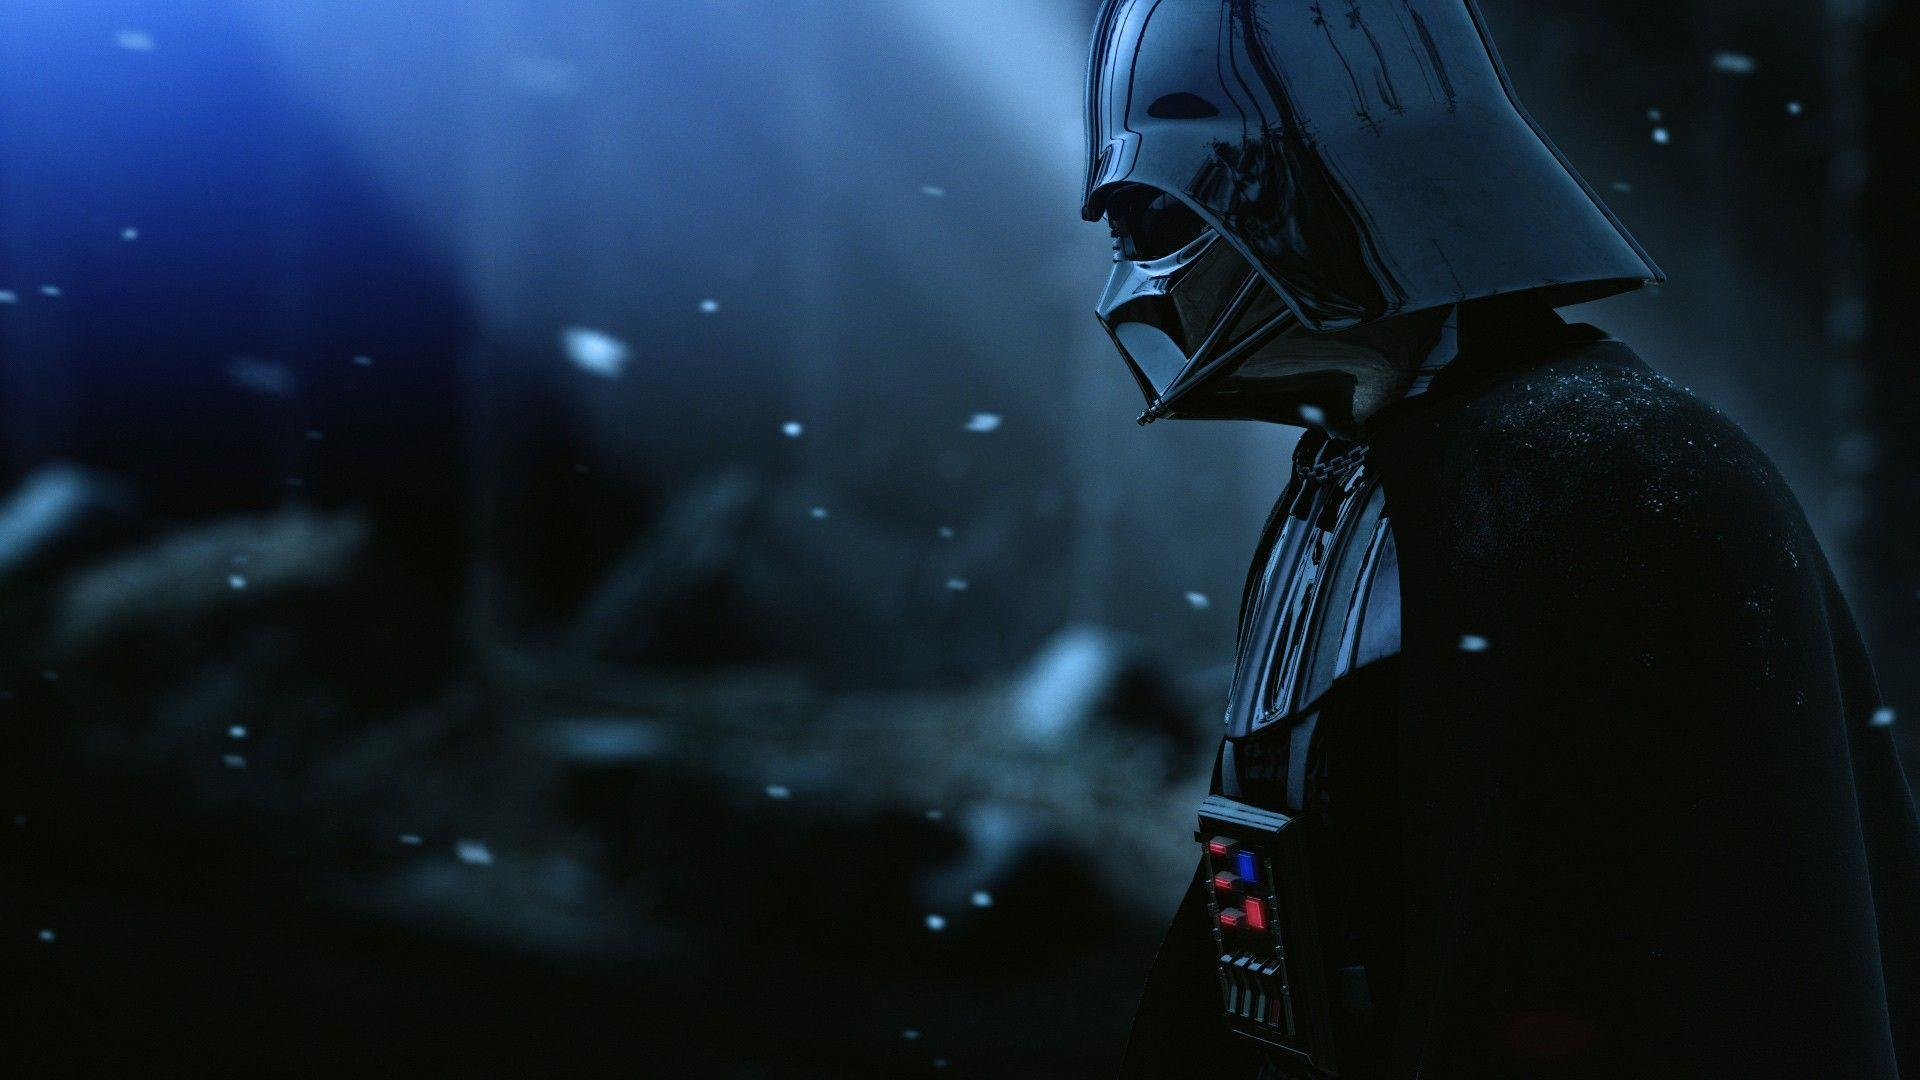 485 Star Wars Wallpapers